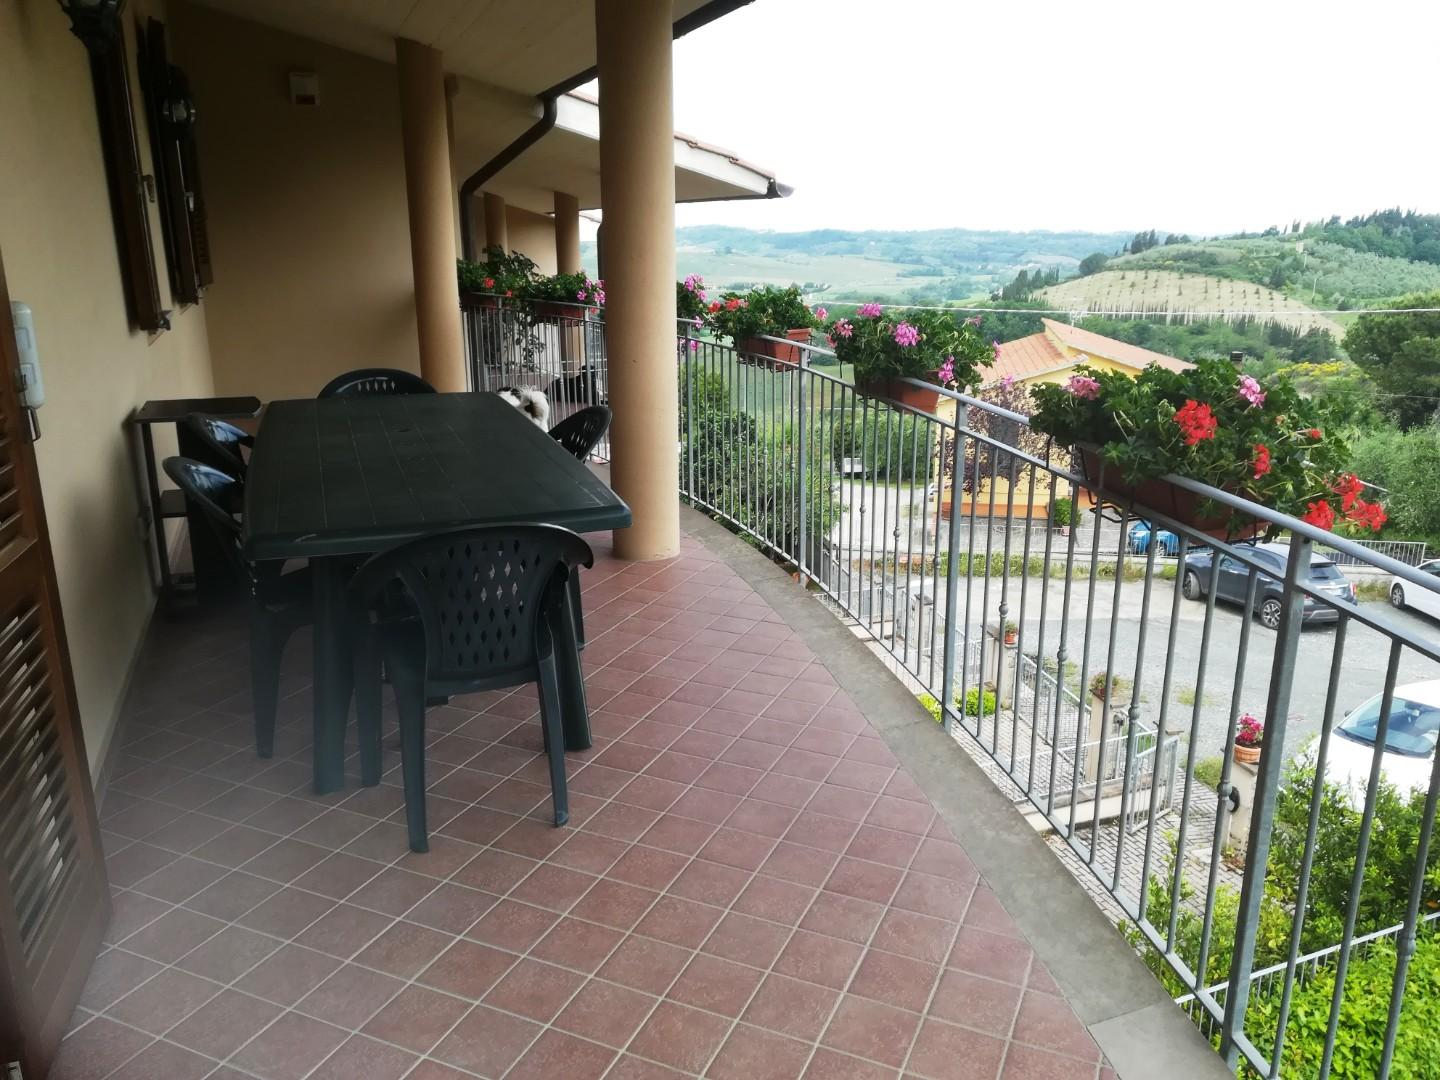 Apartment for sale in Terricciola (PI)